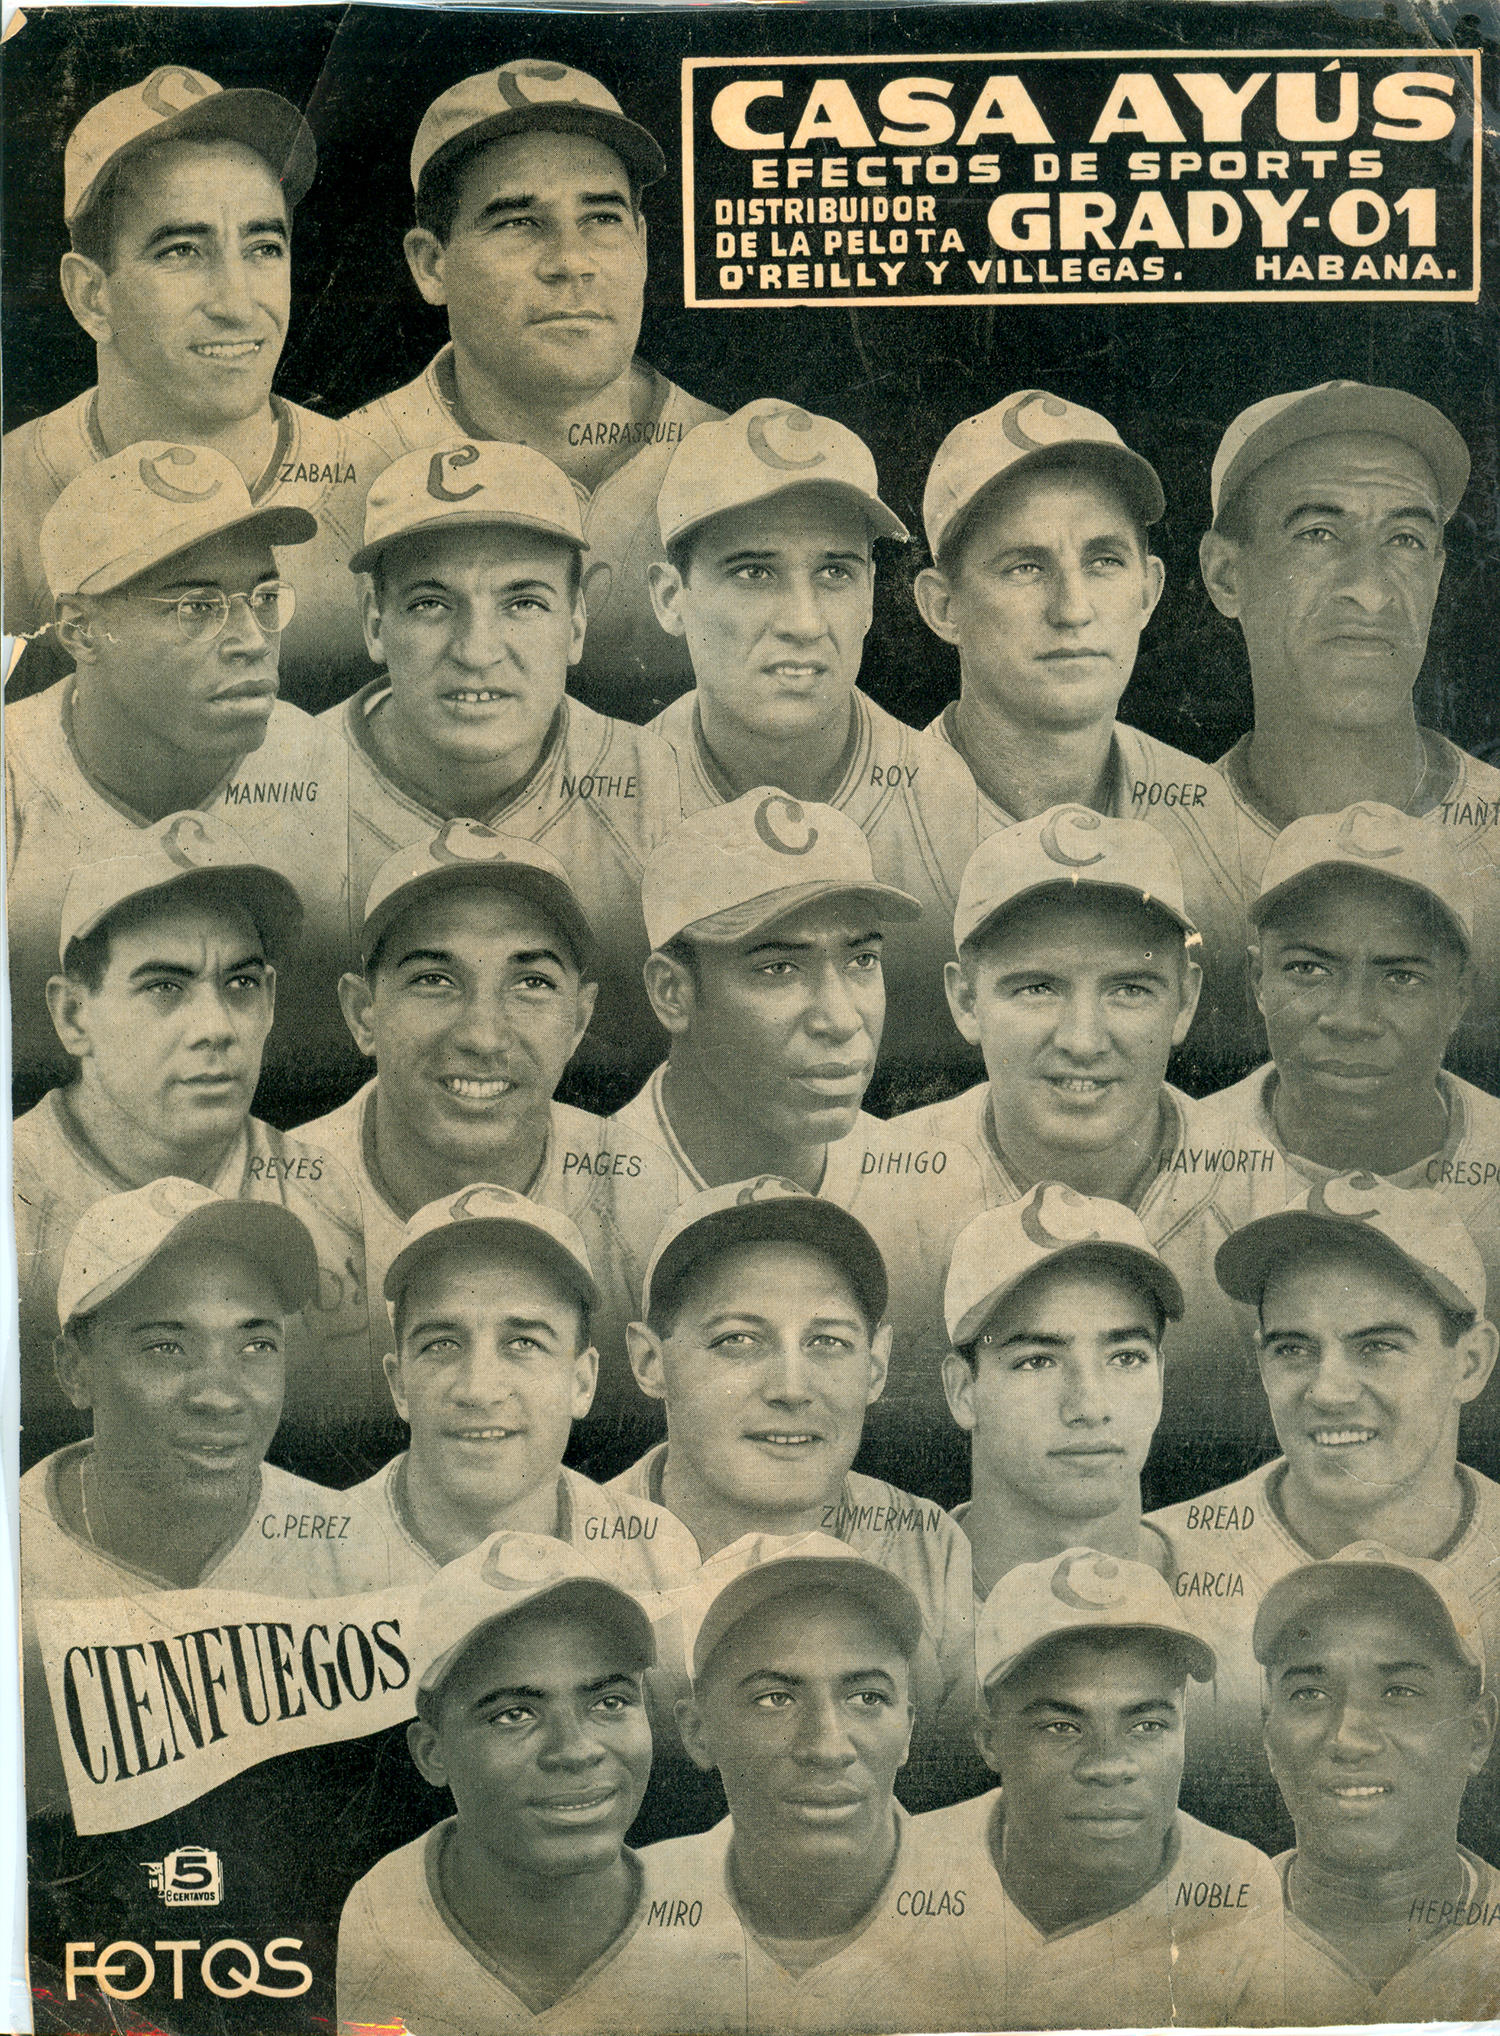 Cristóbal Torriente heralded from the town of Cienfuegos, which was famous for breeding future baseball stars. Cienfuegos was a sugar mill town and had teams associated with the mills which would compete against each other. Above is an advertisement for one of those teams, now in the Hall of Fame's collection. (National Baseball Hall of Fame)